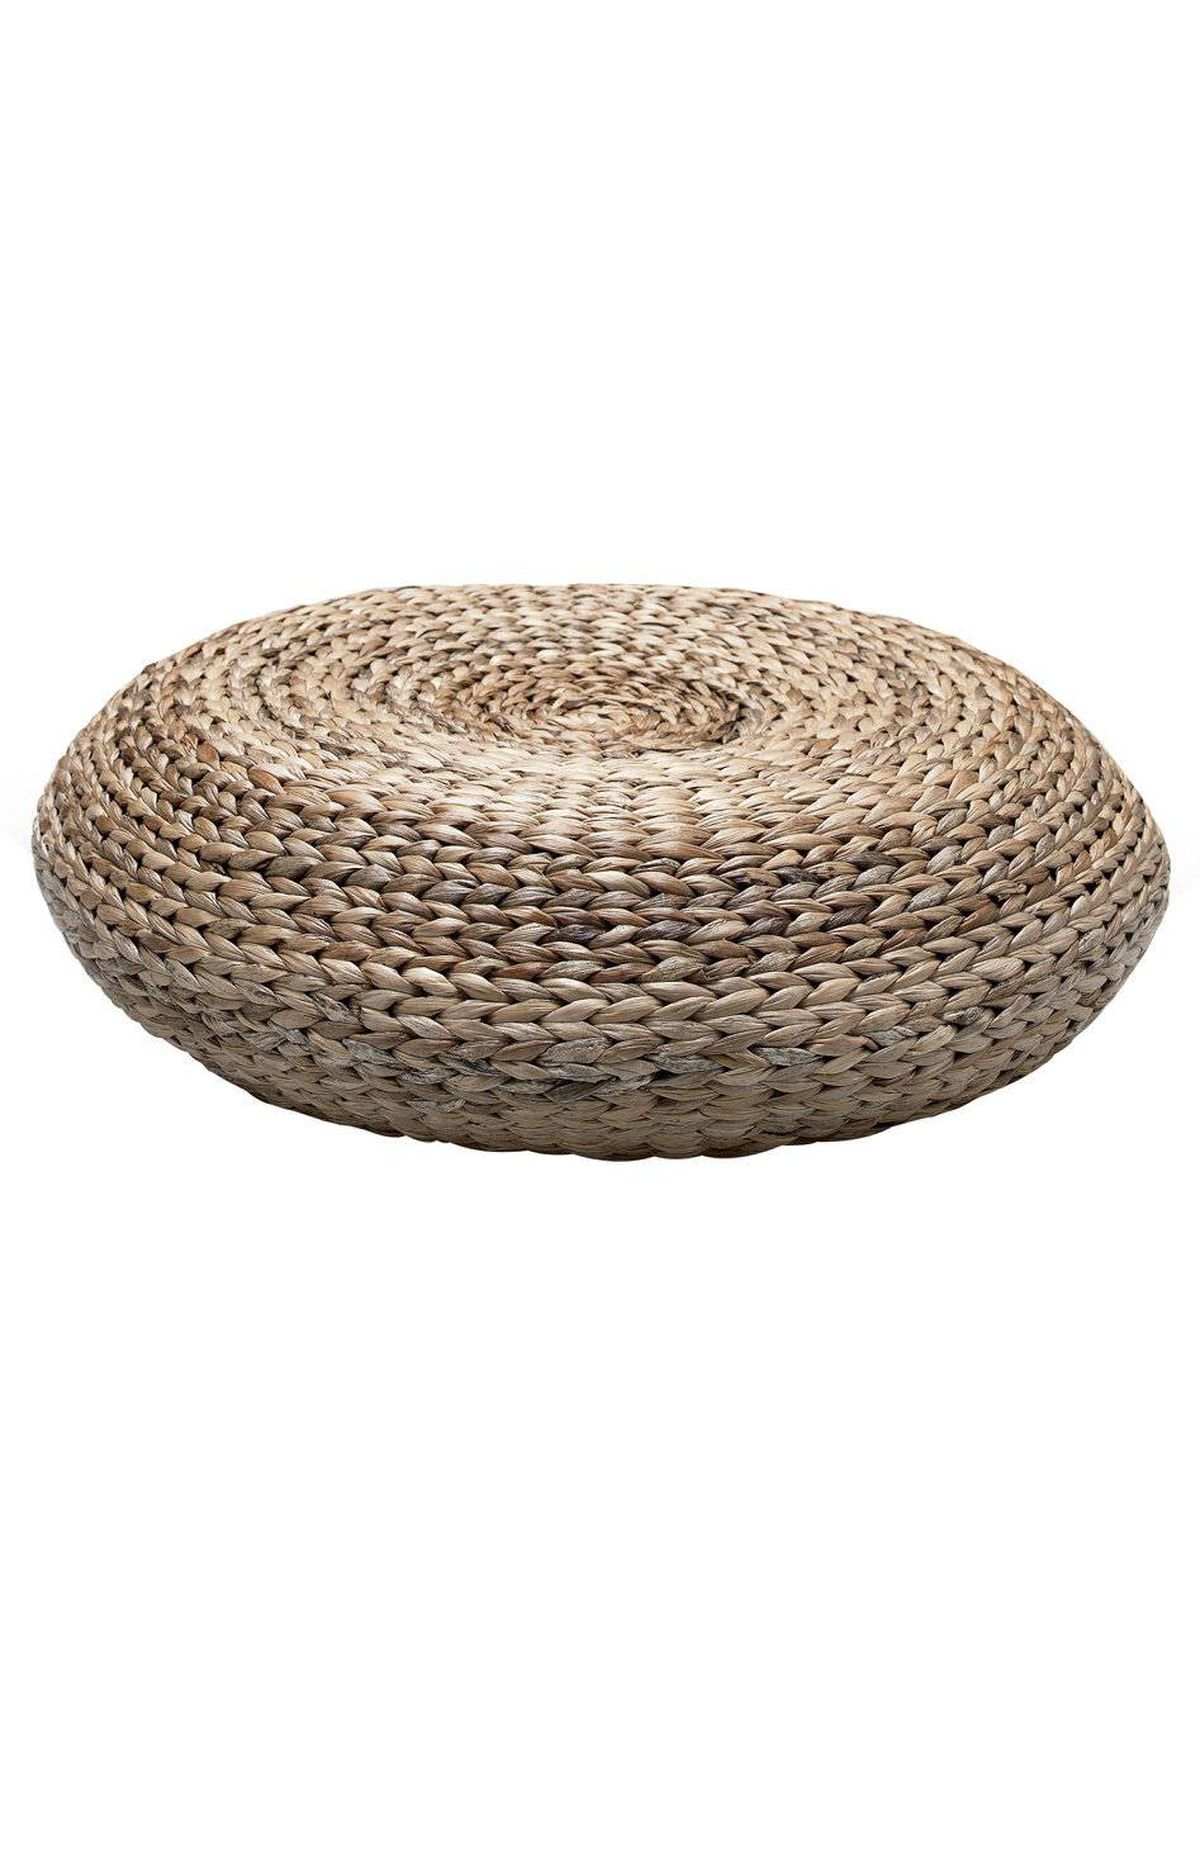 Put away the teak and other summer furniture for comfy, easy-to-move pillows, poufs or stools. Alseda banana-fibre stool, $39.99 at IKEA stores across Canada.